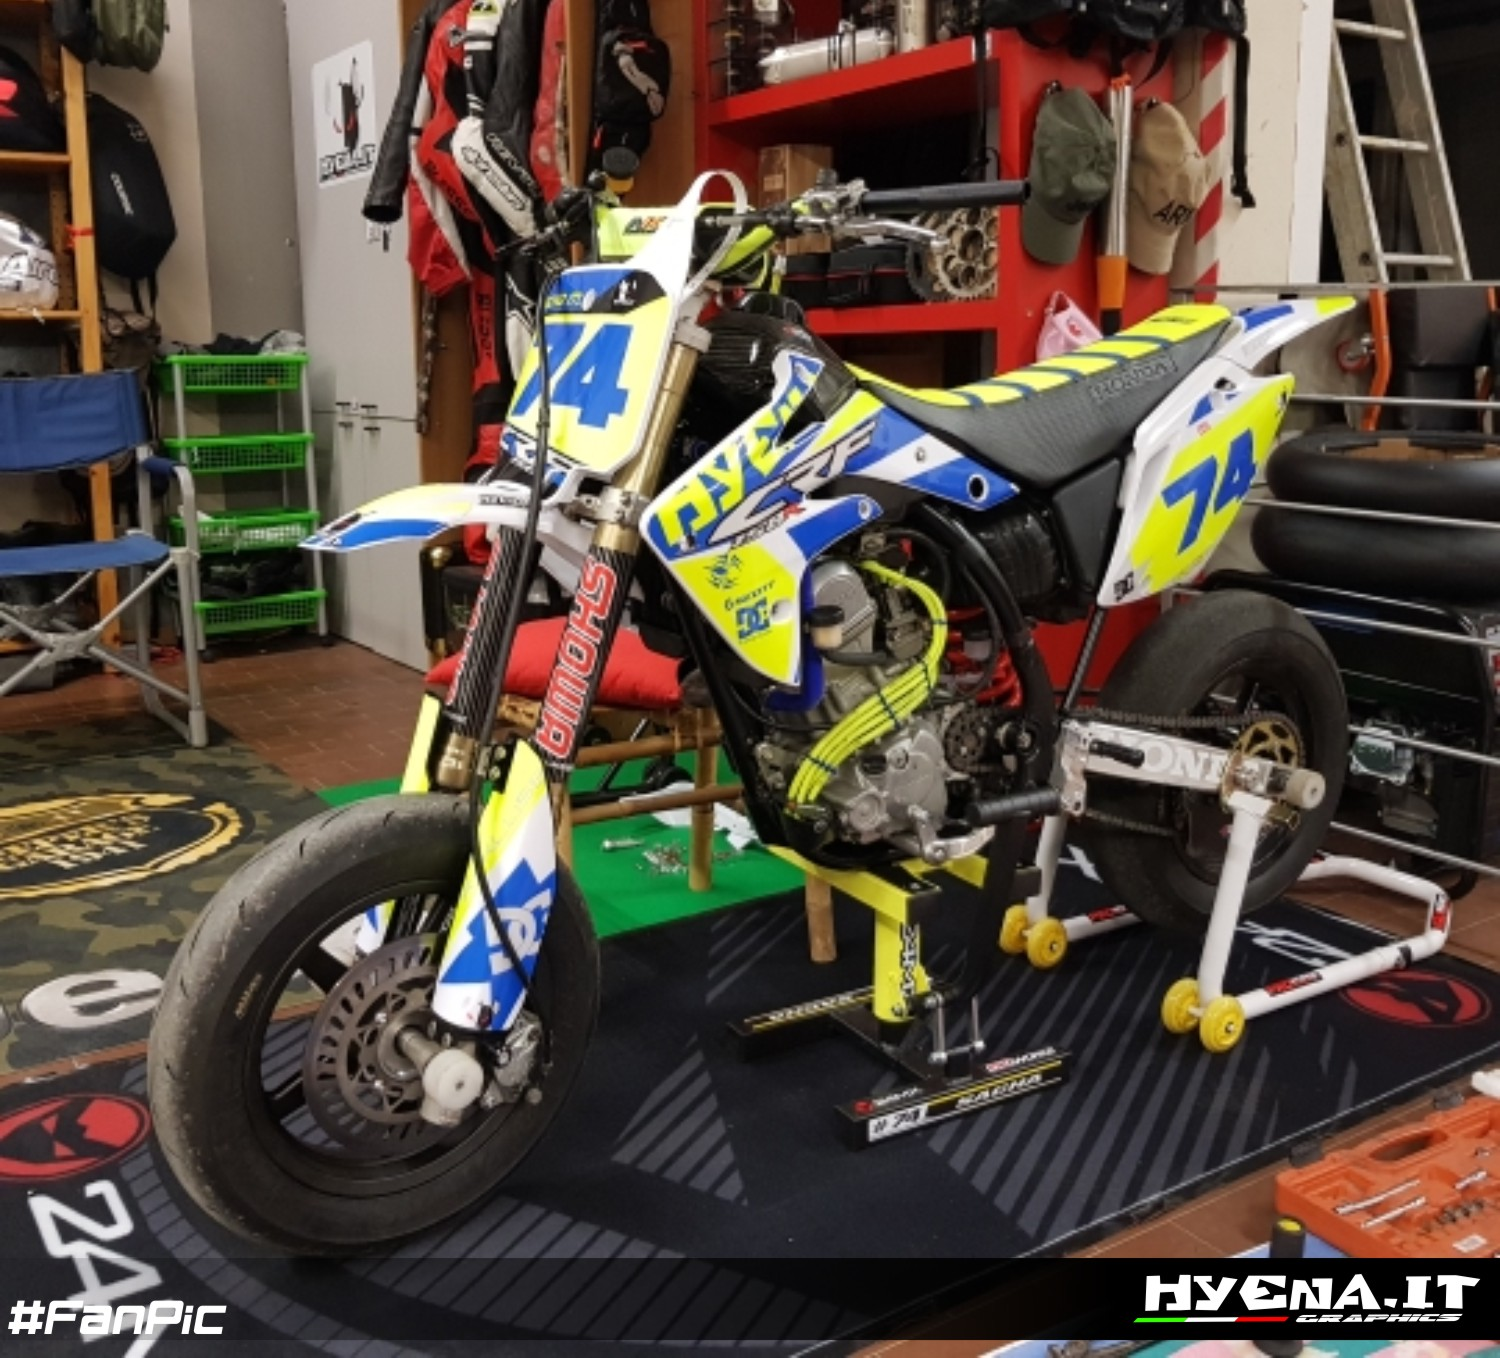 hight resolution of customized graphic kit for honda crf 150 customized decals for honda crf 150 graphic honda crf 150 decals honda crf 150 crf 150 customized graphics